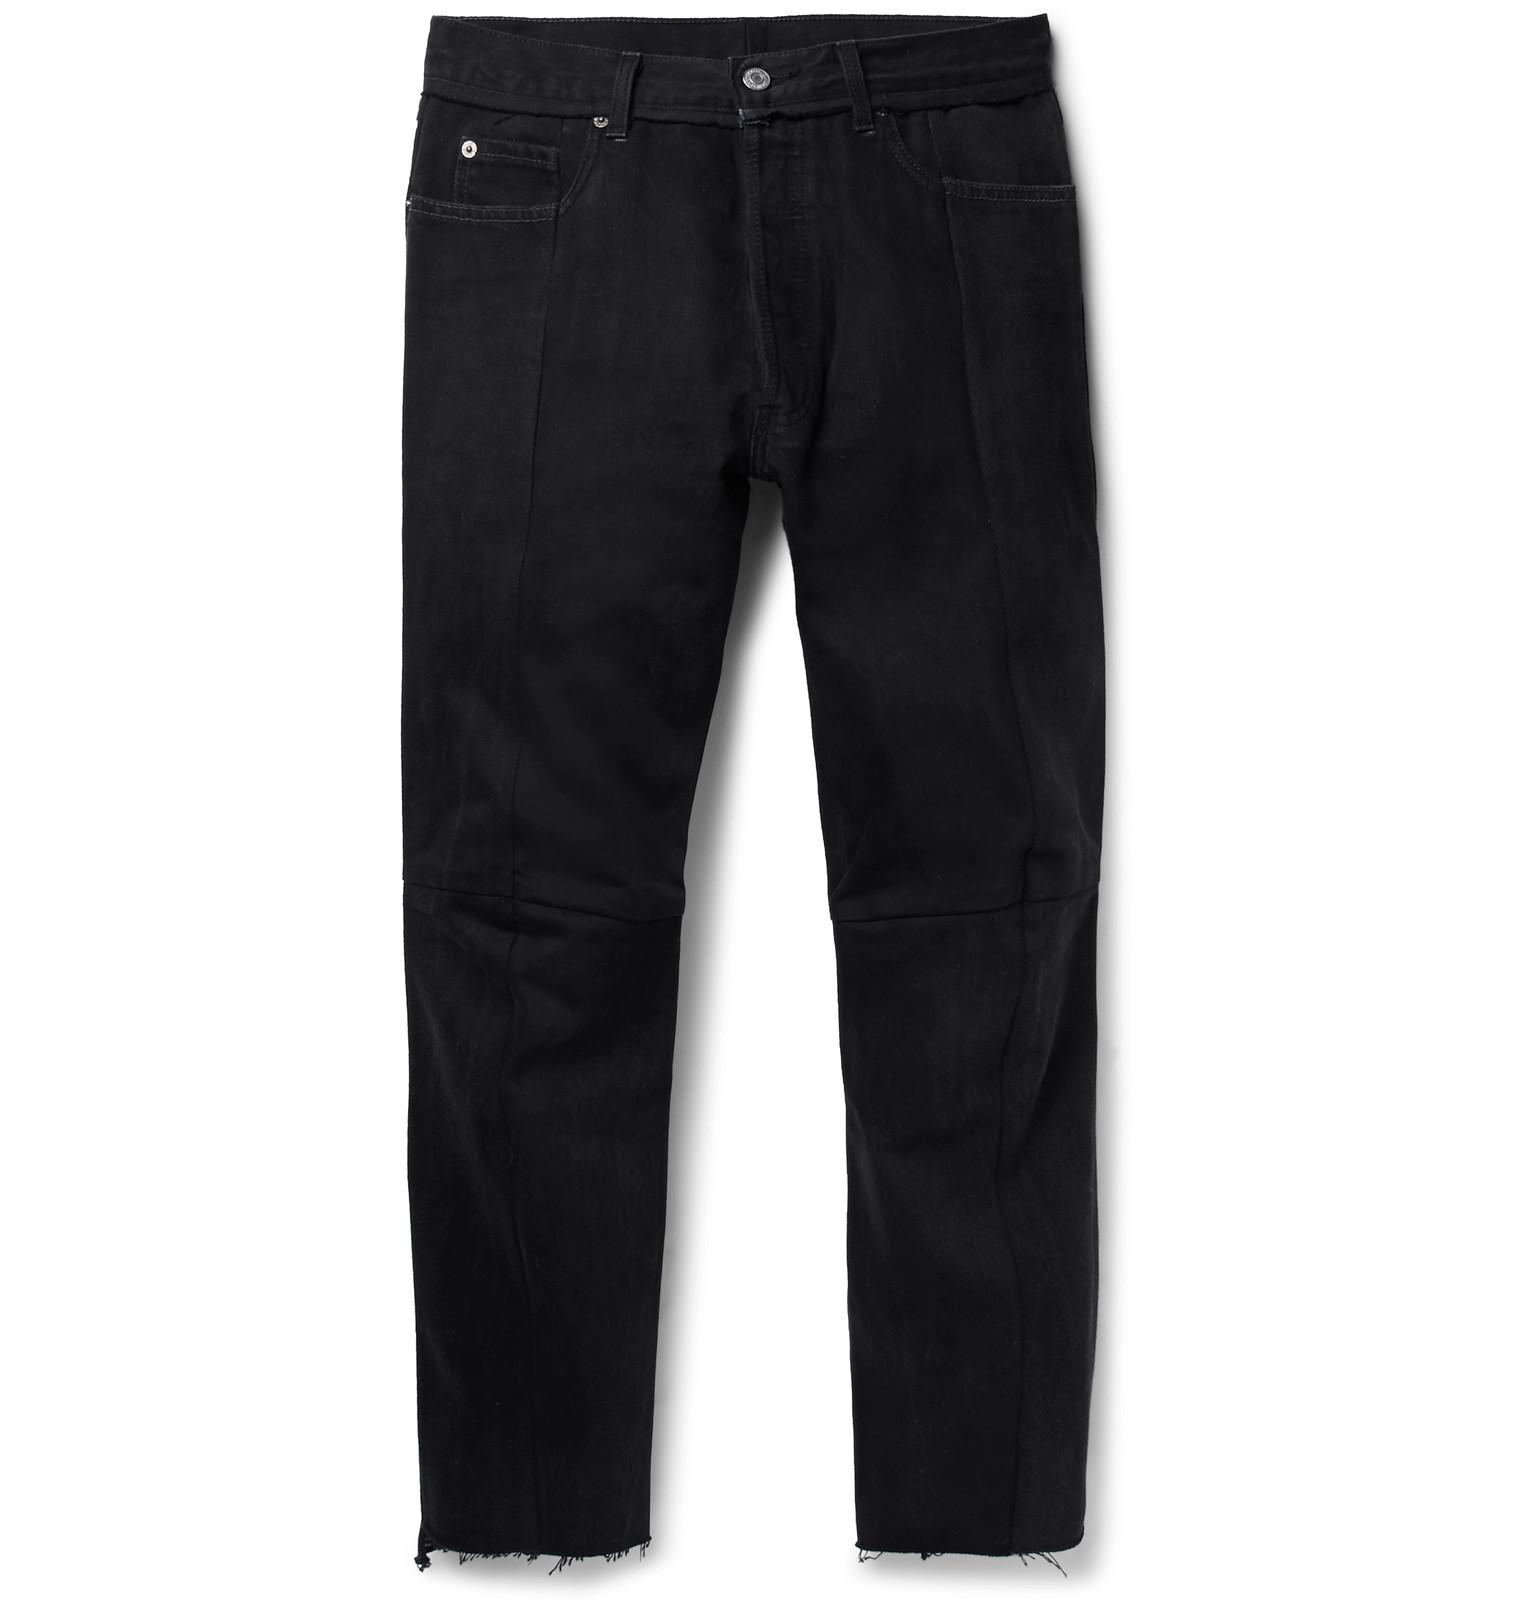 + Levis 501 Slim-fit Panelled Denim Jeans VETEMENTS Aw3PJcXCM